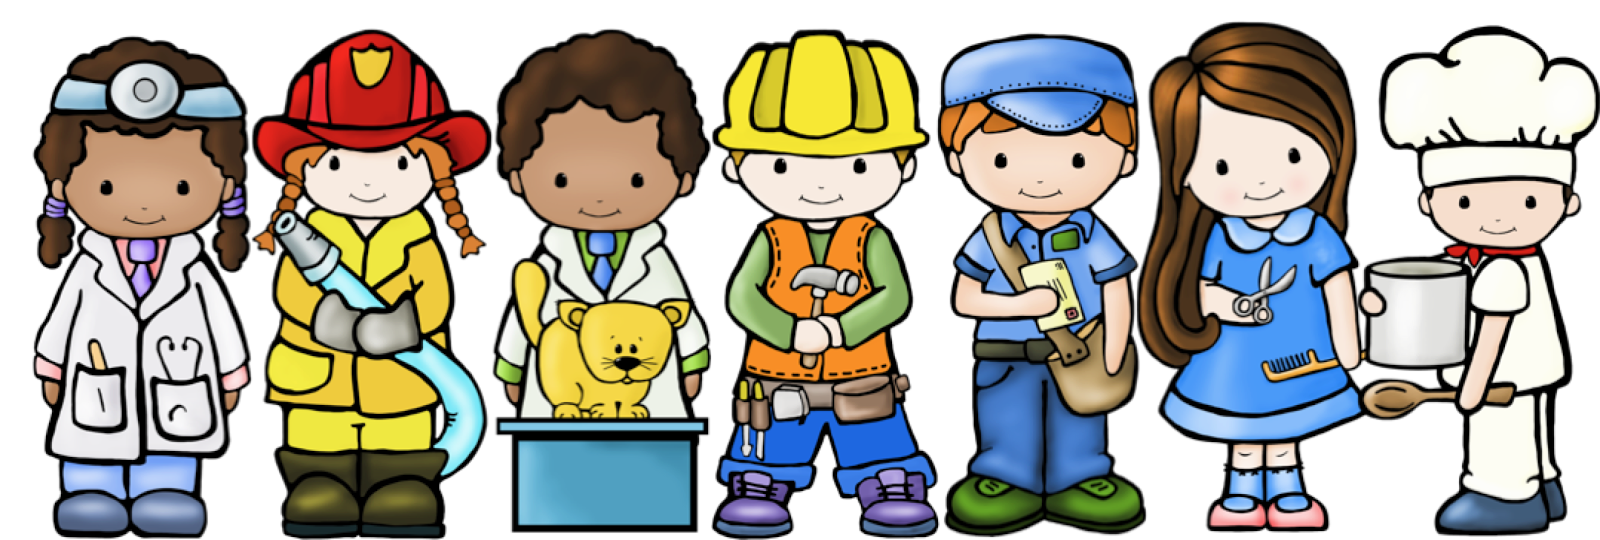 Helpers clipart. Community